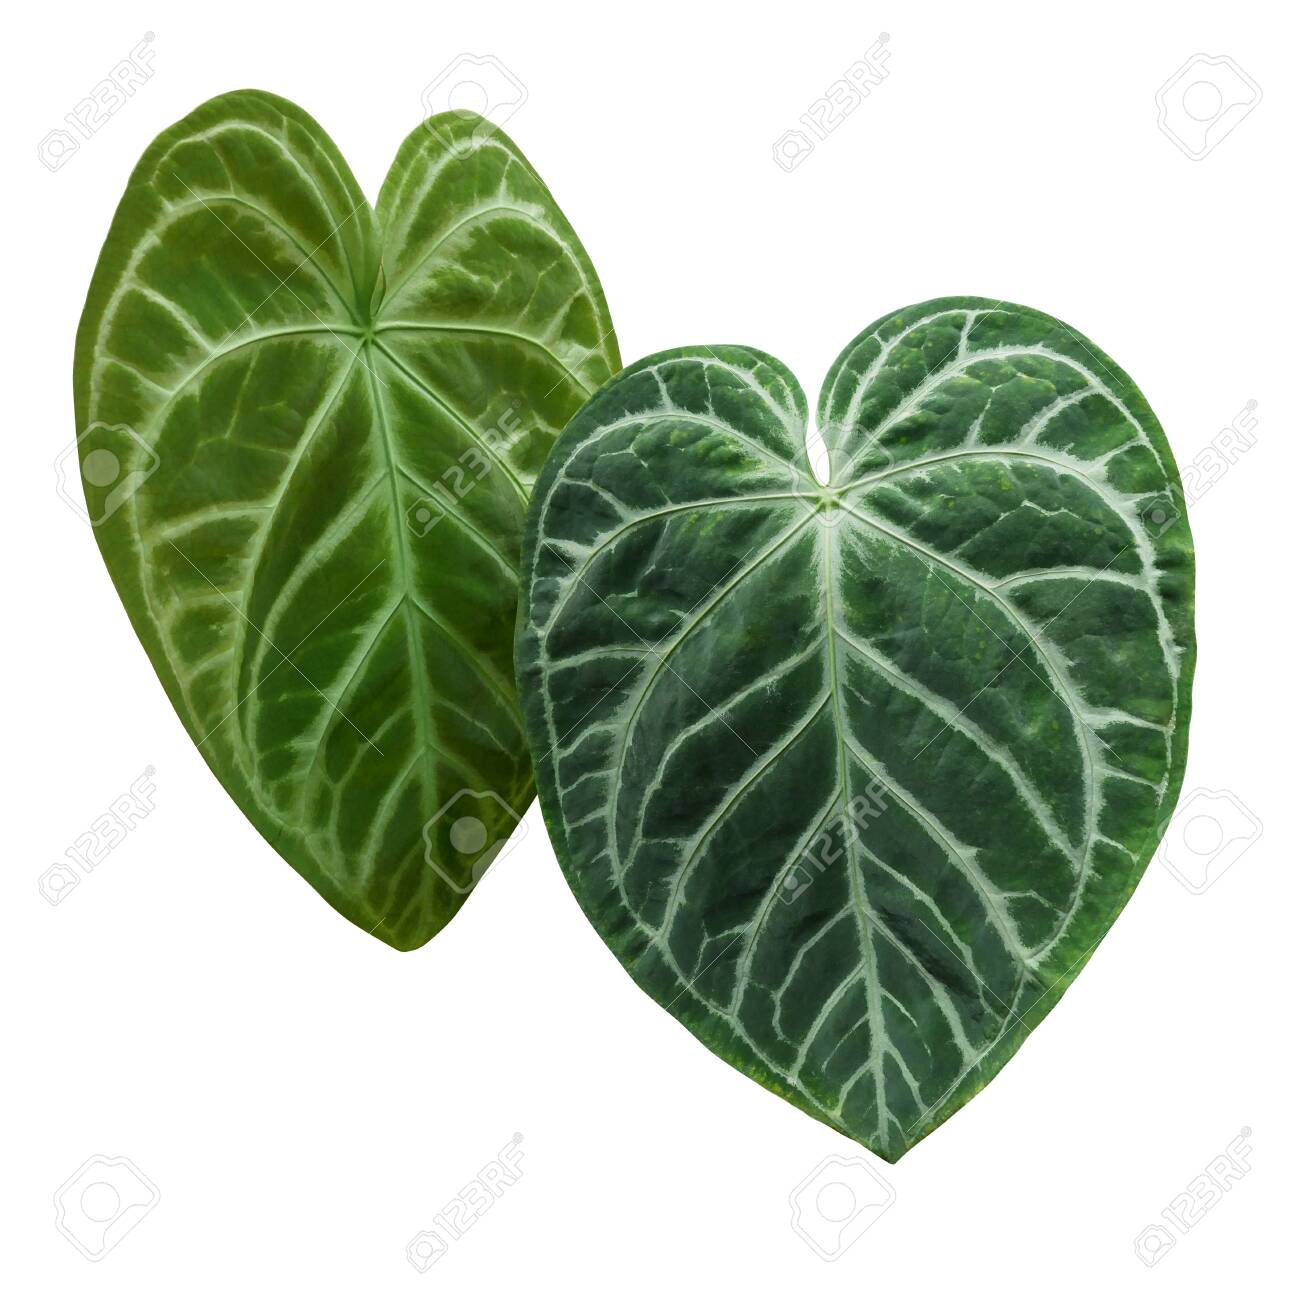 Heart Shaped Green Variegated Leaves Pattern Of Rare Anthurium